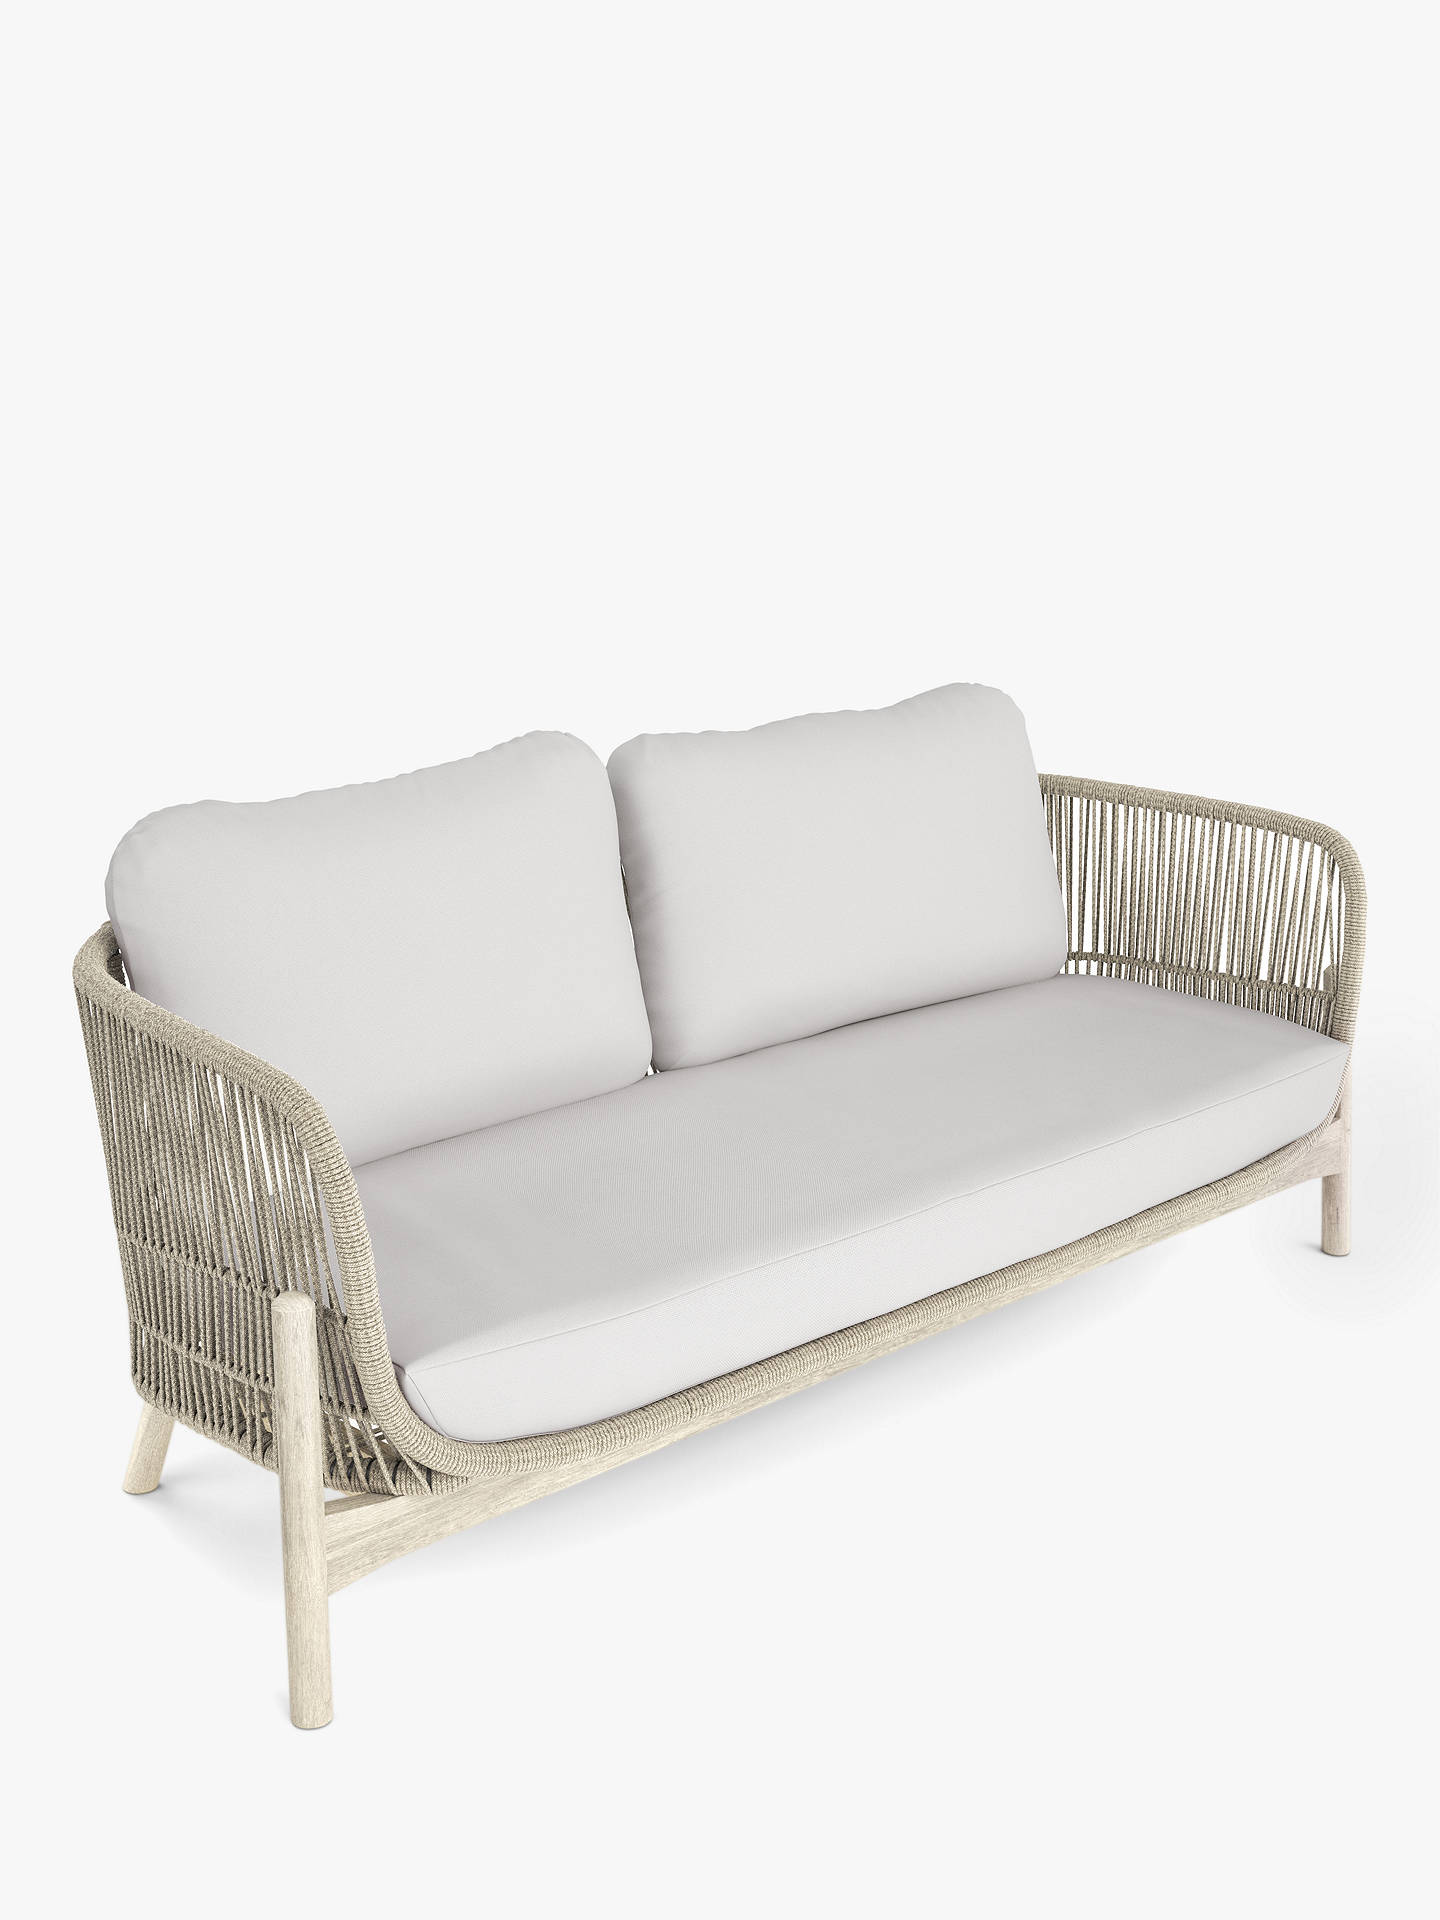 John Lewis & Partners Cradle Rope 8-Seat Garden Sofa, FSC-Certified (Acacia  Wood), Natural